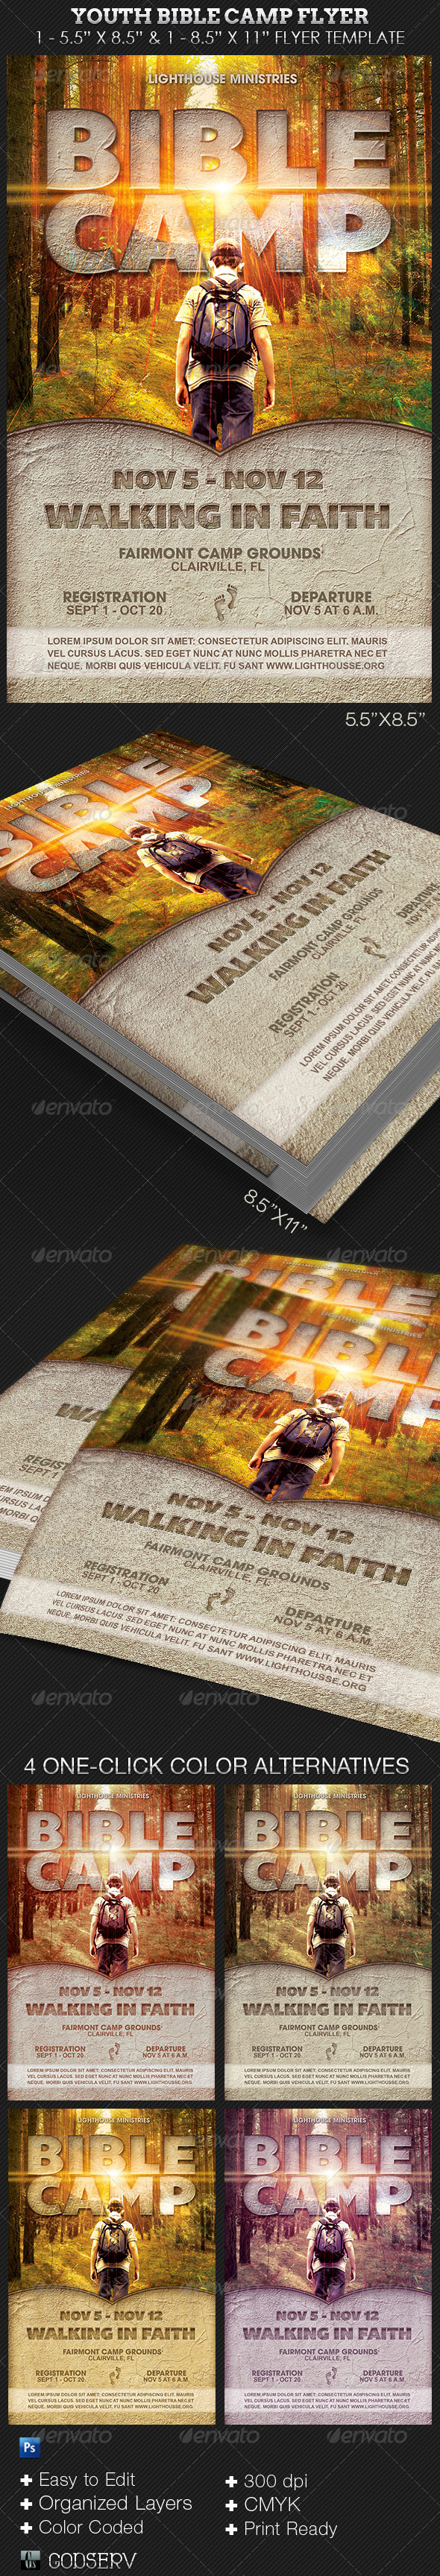 Youth Bible Camp Church Flyer Template - Church Flyers